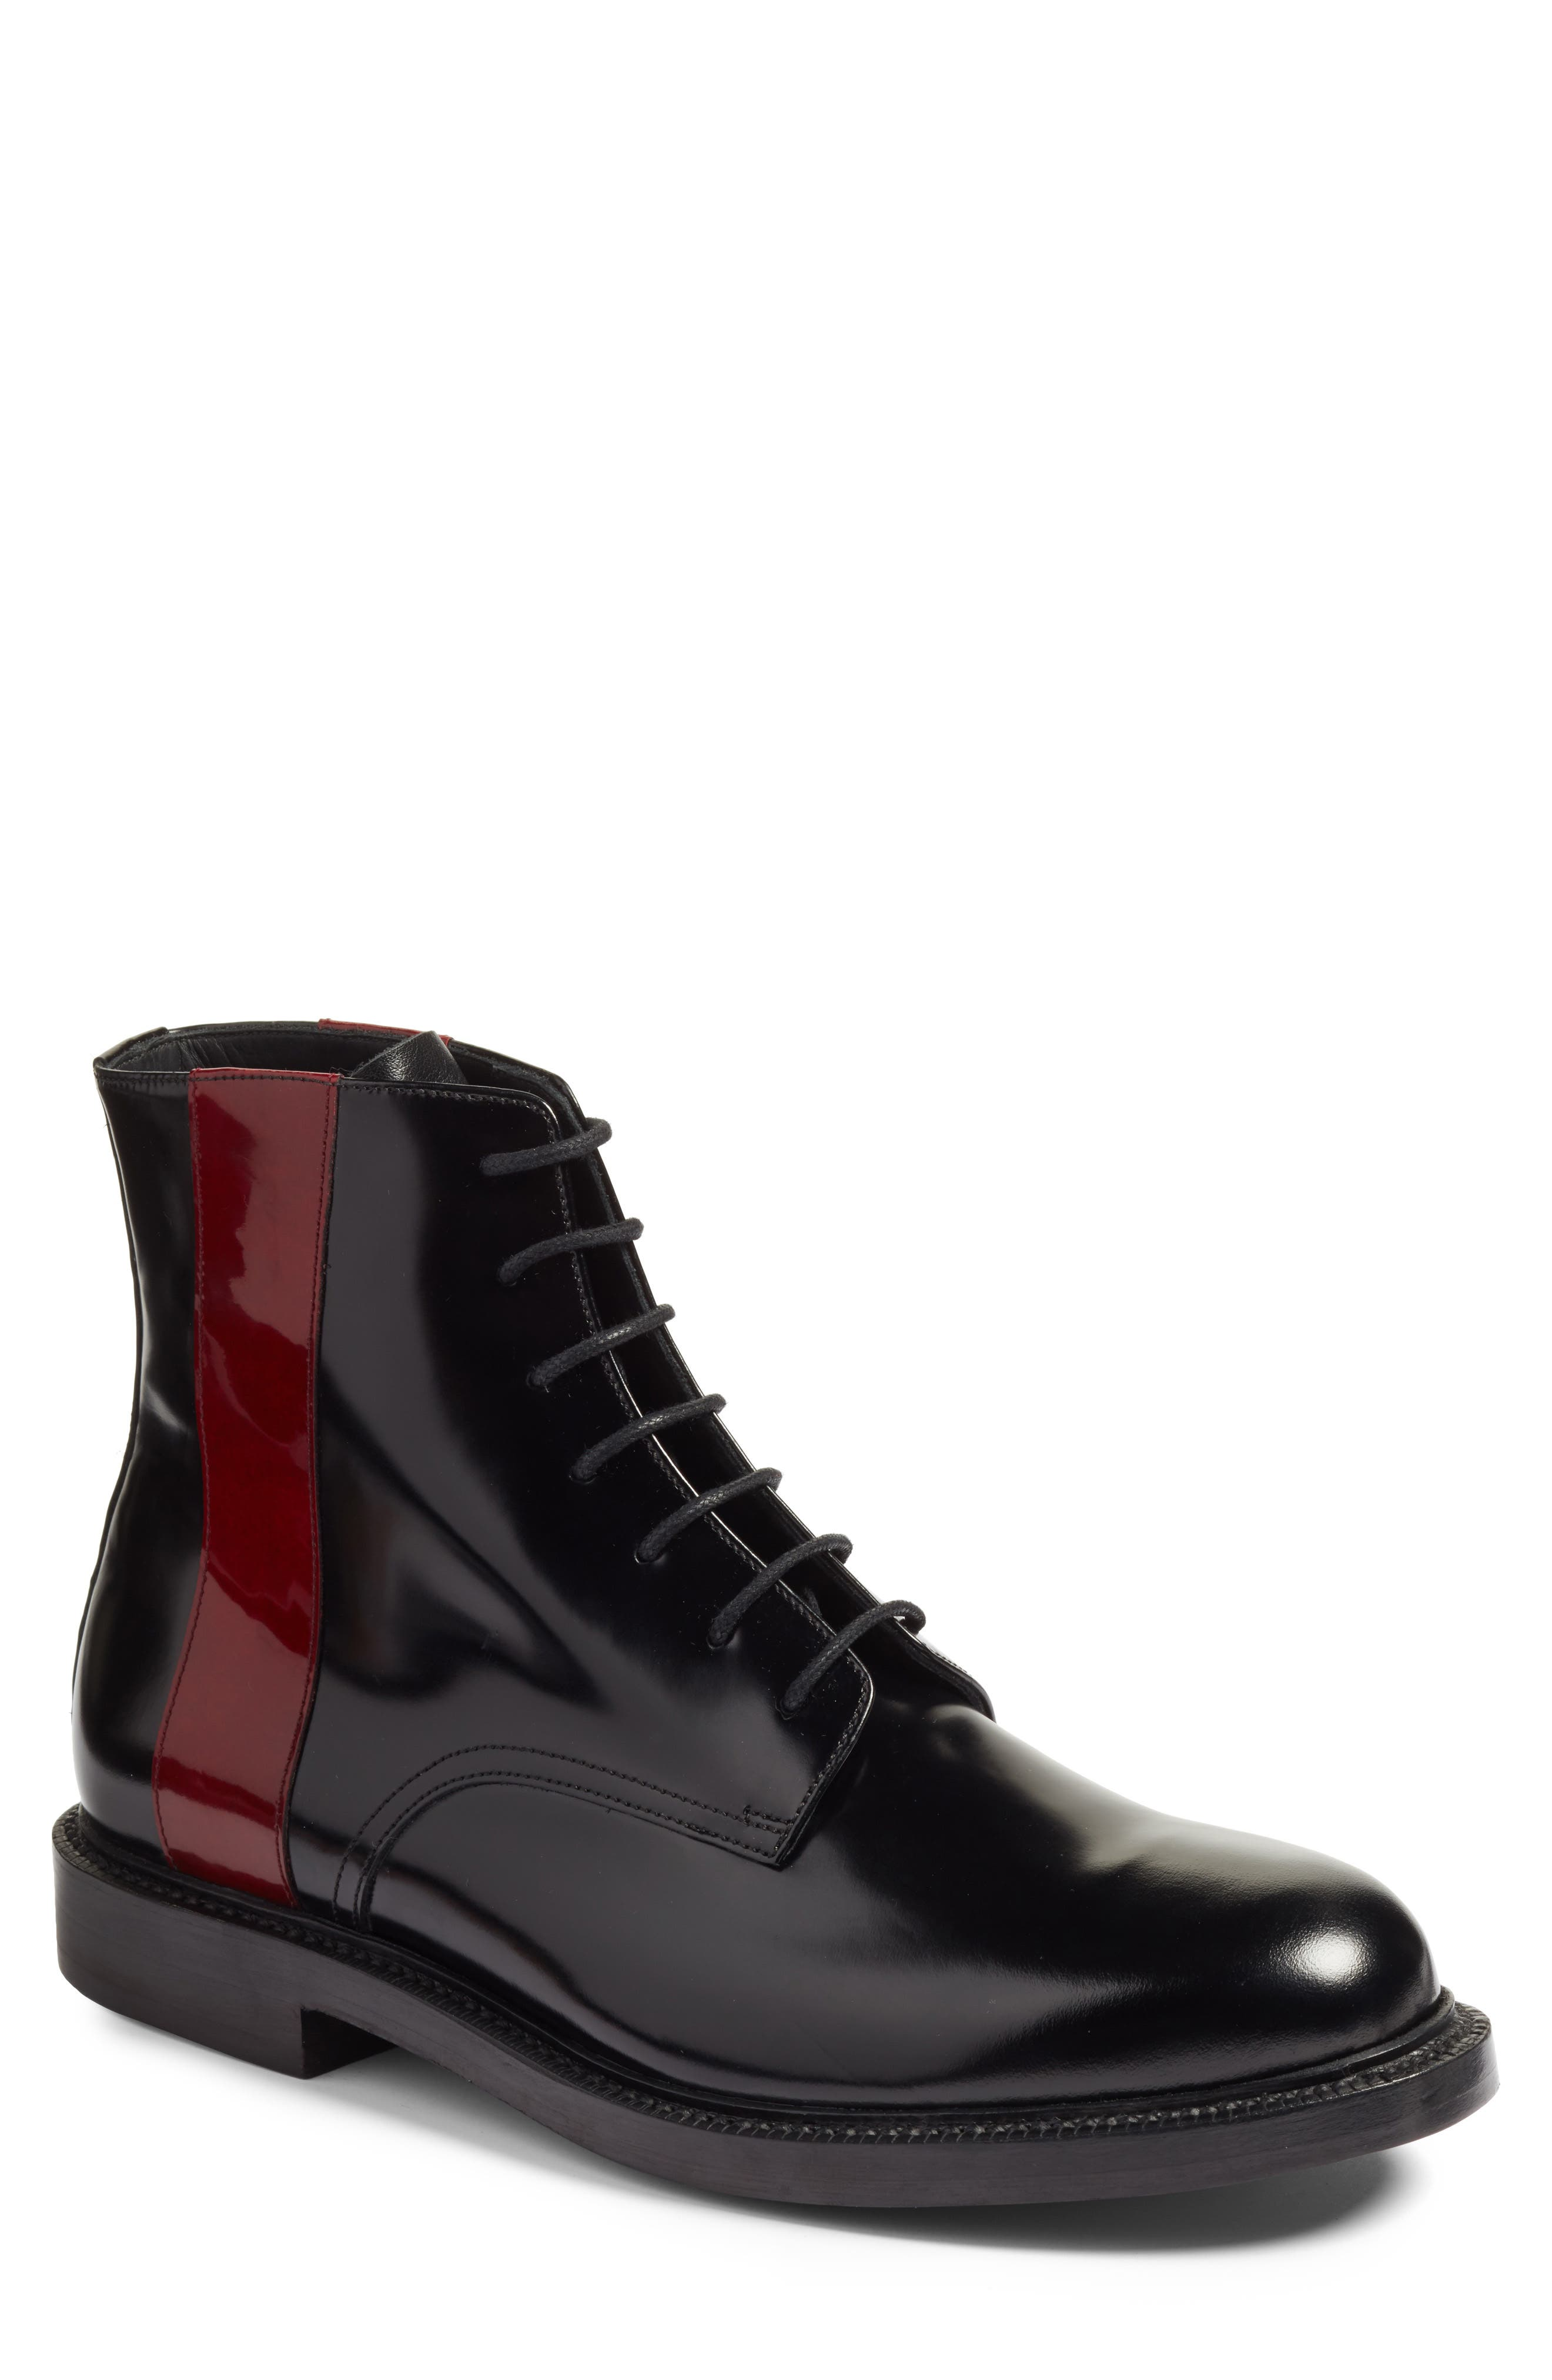 Hova Boot,                         Main,                         color, Black/ Red Leather